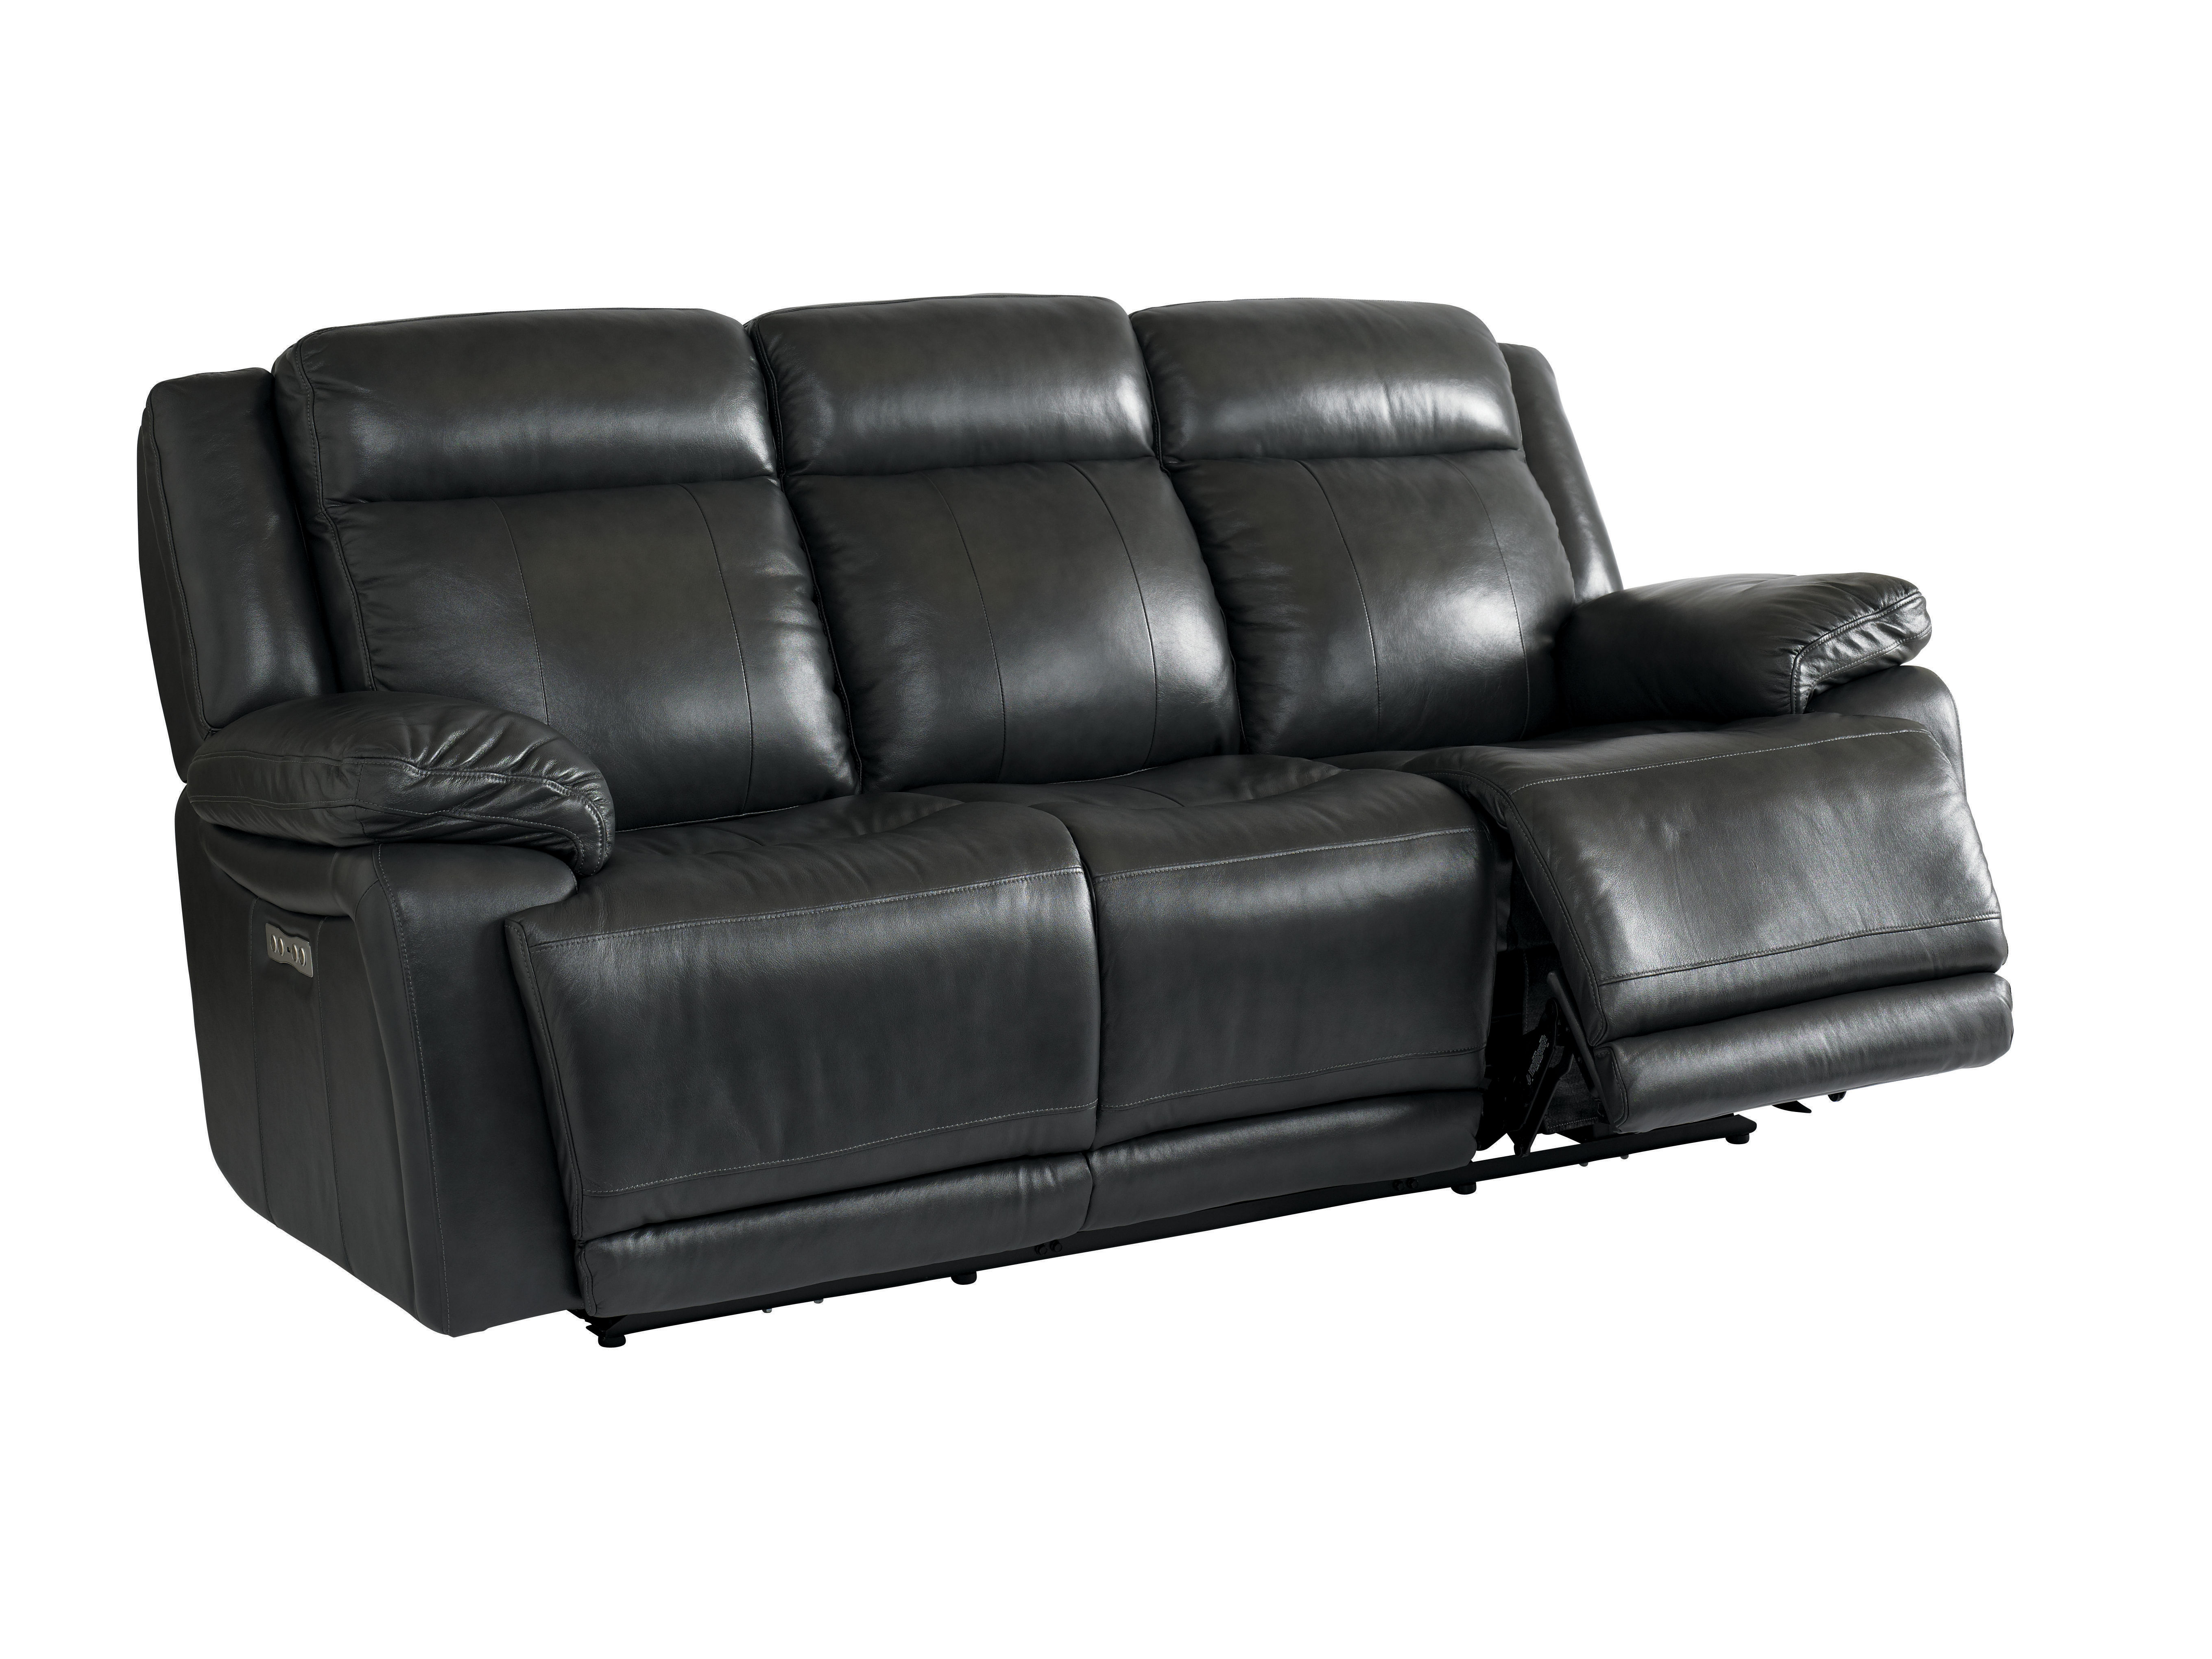 Evo Collection Of Club Sectionals Bassett Club Level